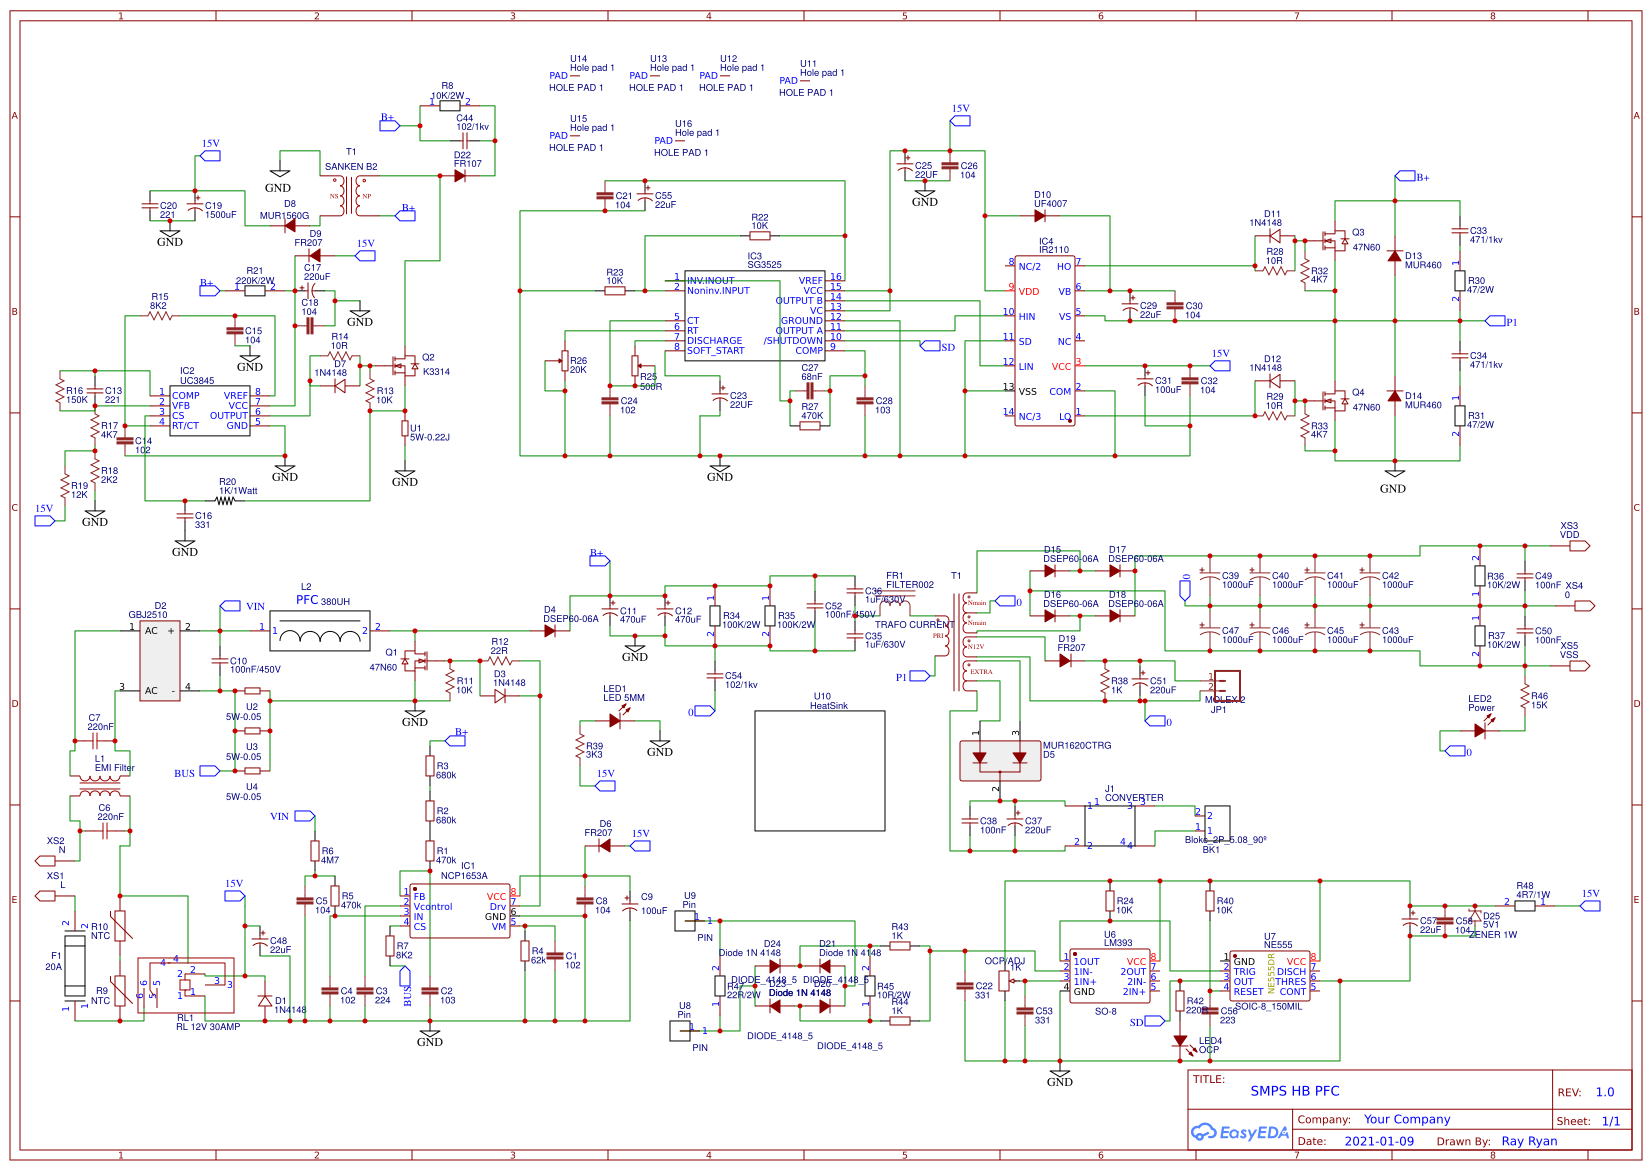 SMPS for Class D amplifier